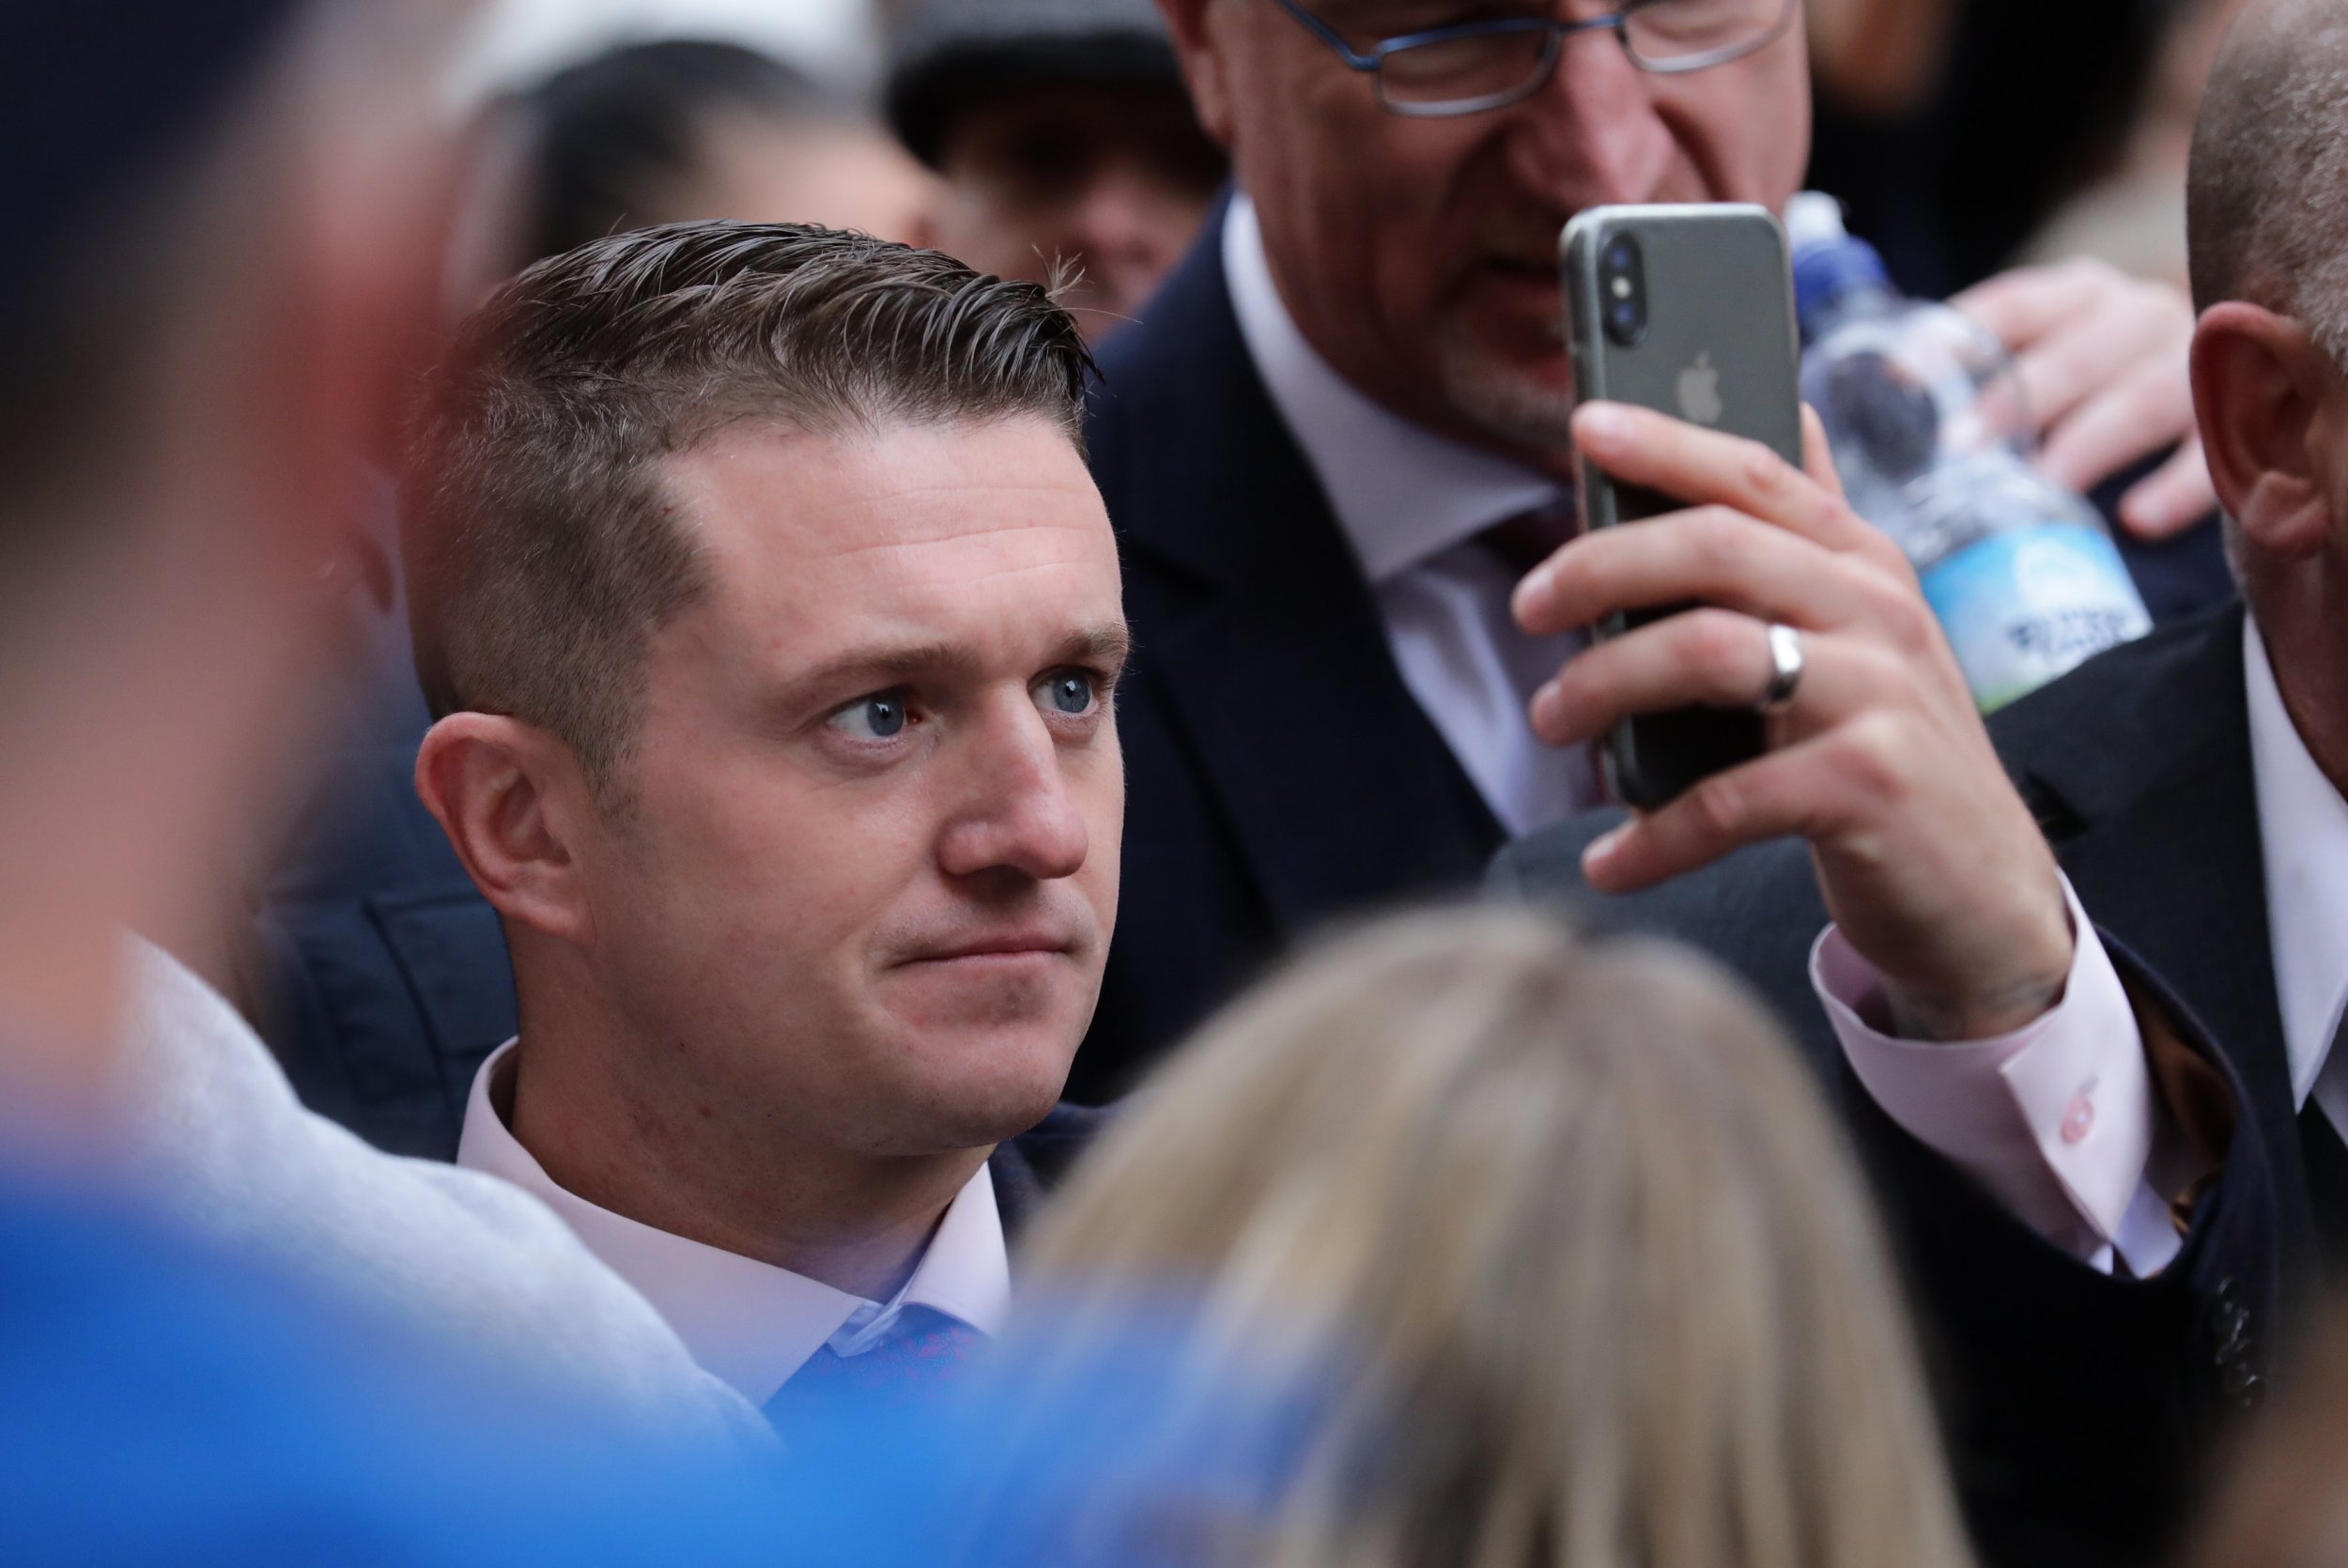 ?? Licensed to London News Pictures. 23/10/2018. London, UK. Former English Defence League leader Tommy Robinson arrives outside the Old Bailey in London, where he is accused of contempt of court for breaking reporting restrictions around the Huddersfield grooming gang trial. Photo credit: Rob Pinney/LNP